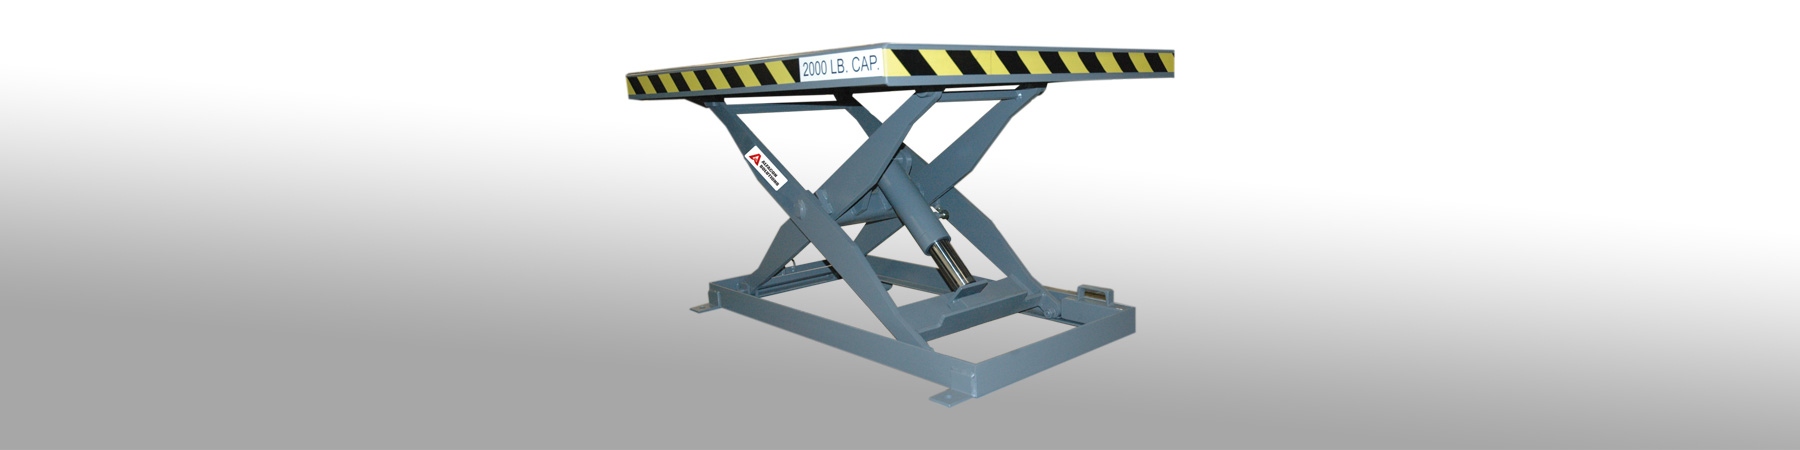 ssl scissor lifts